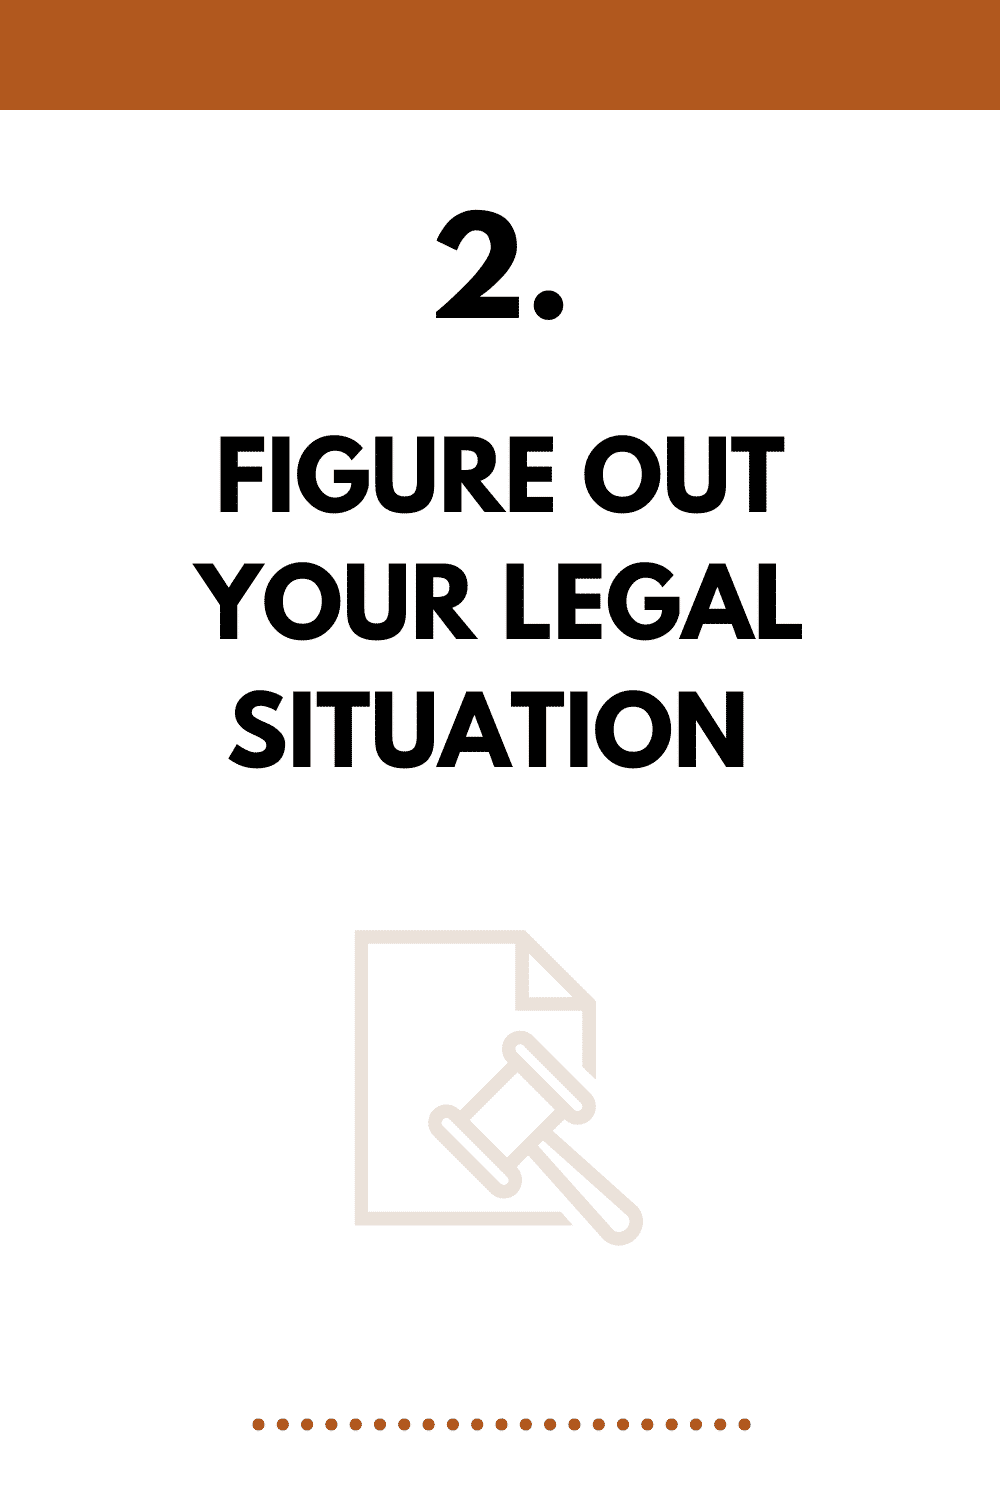 Figure out your legal situation for your coffee shop